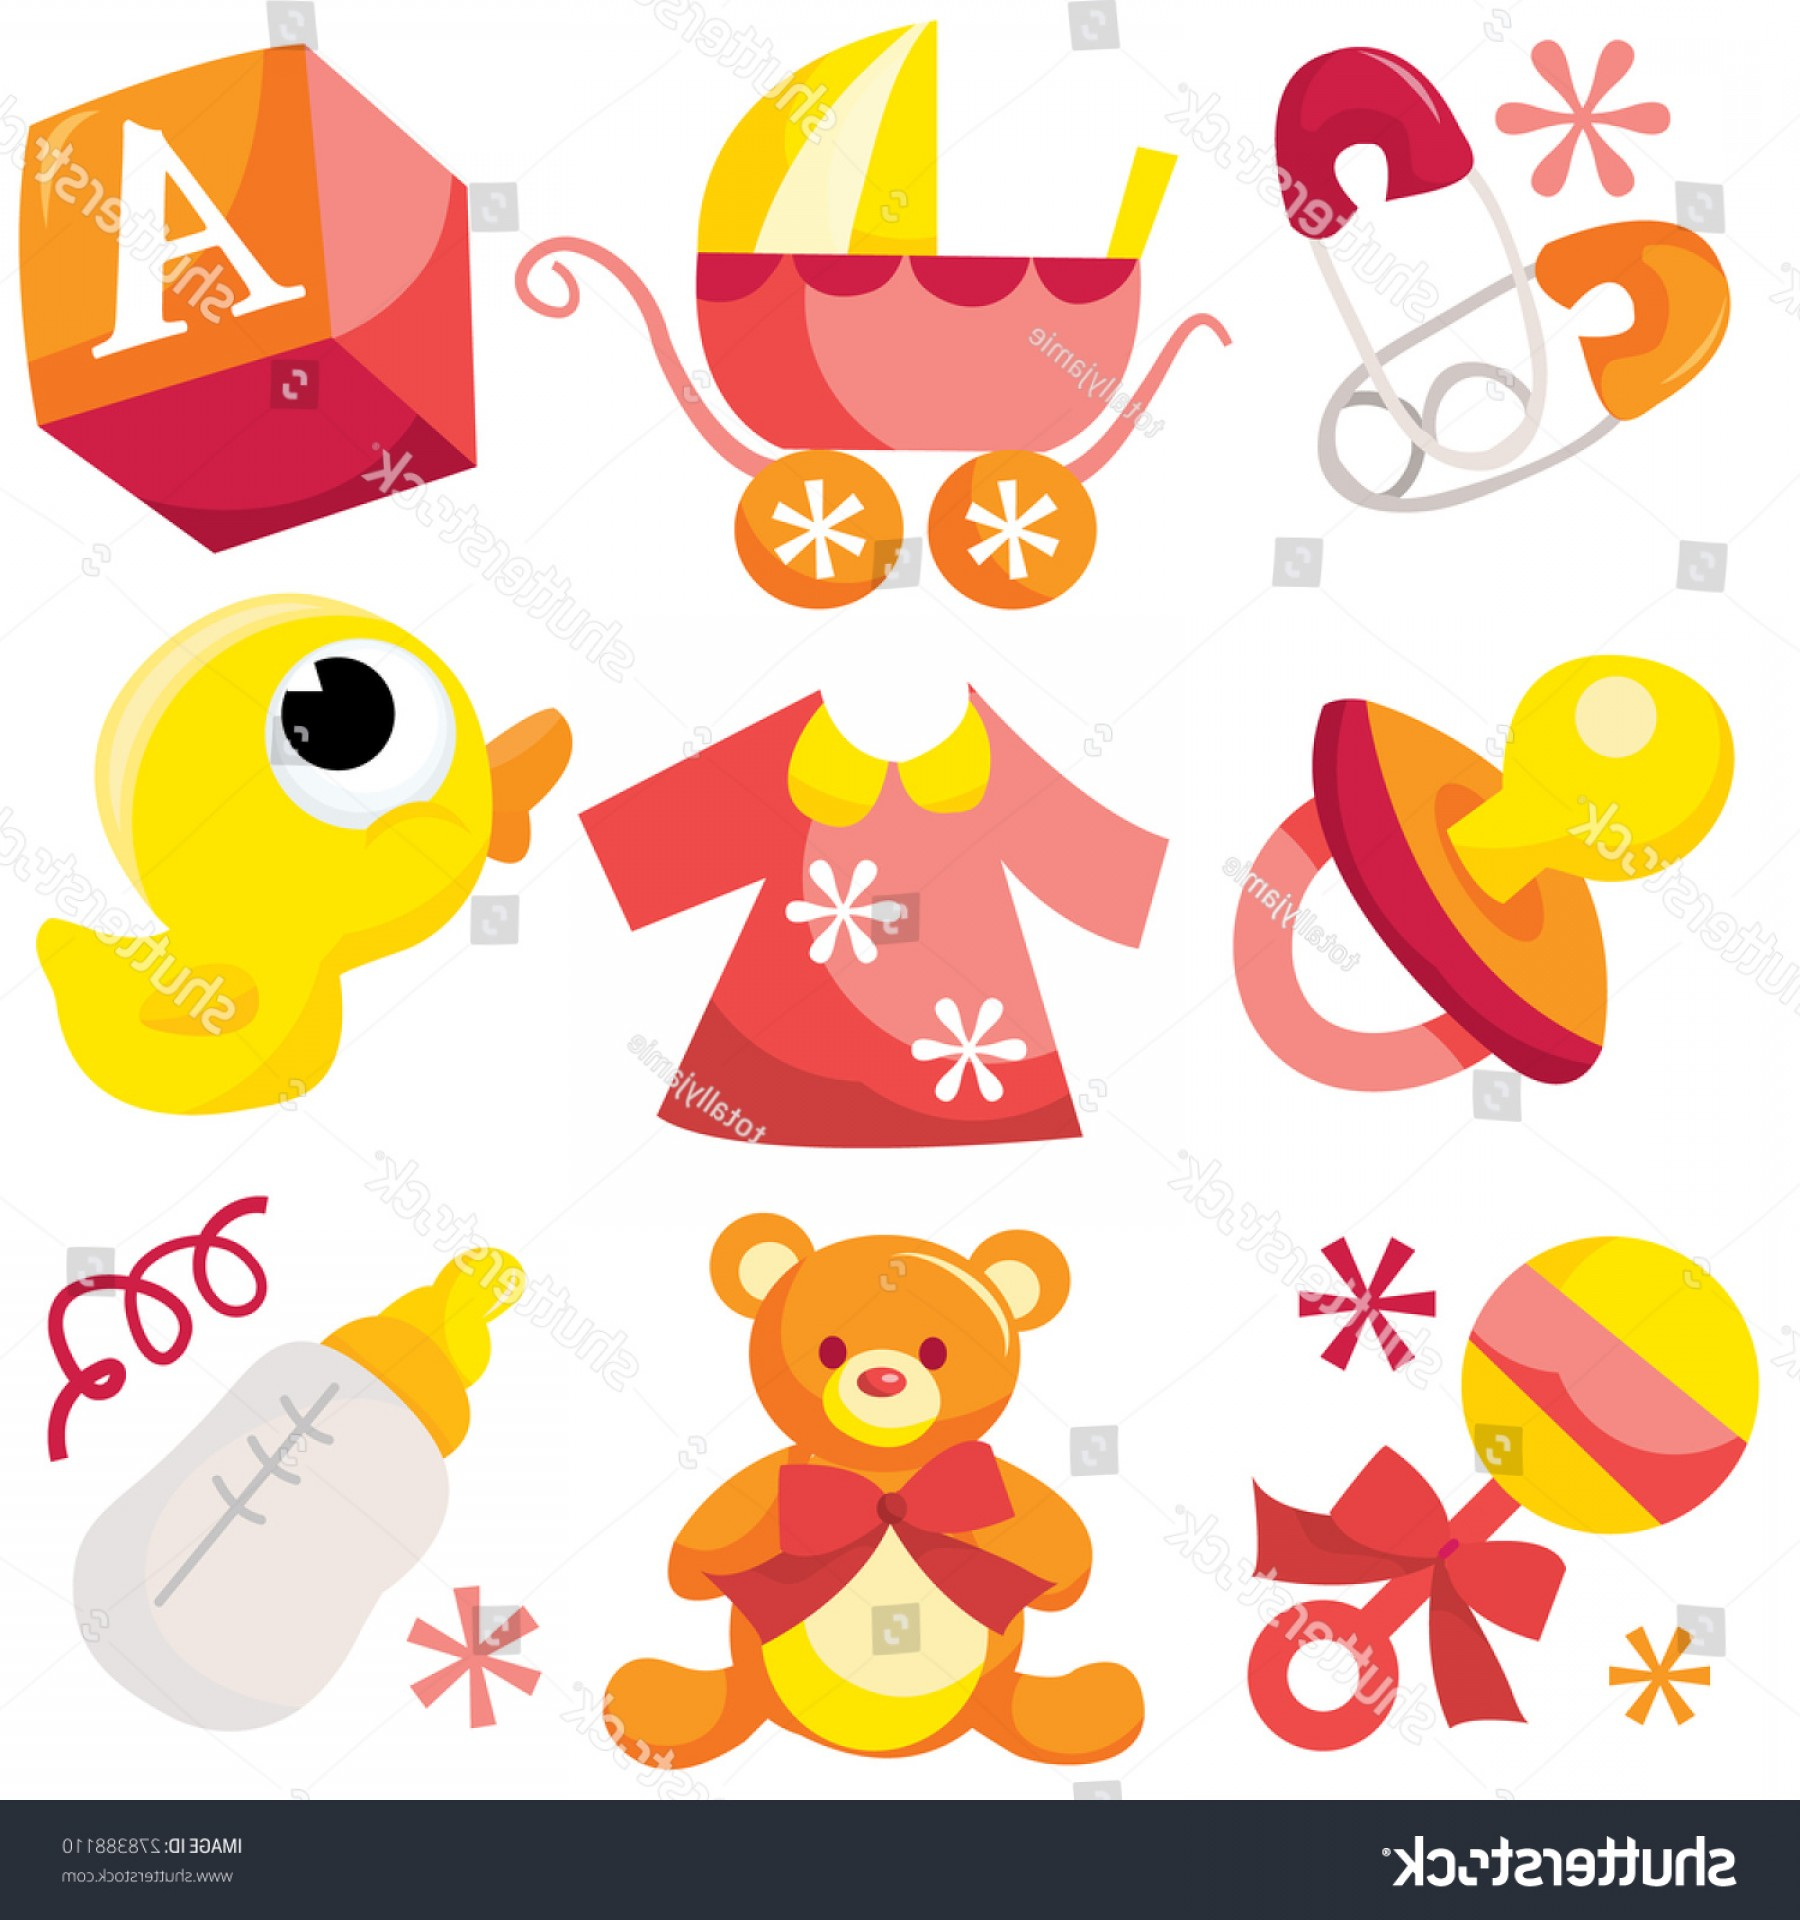 Nautical Vector Art Baby Rattle: Vector Illustration Cute Baby Boy Icons